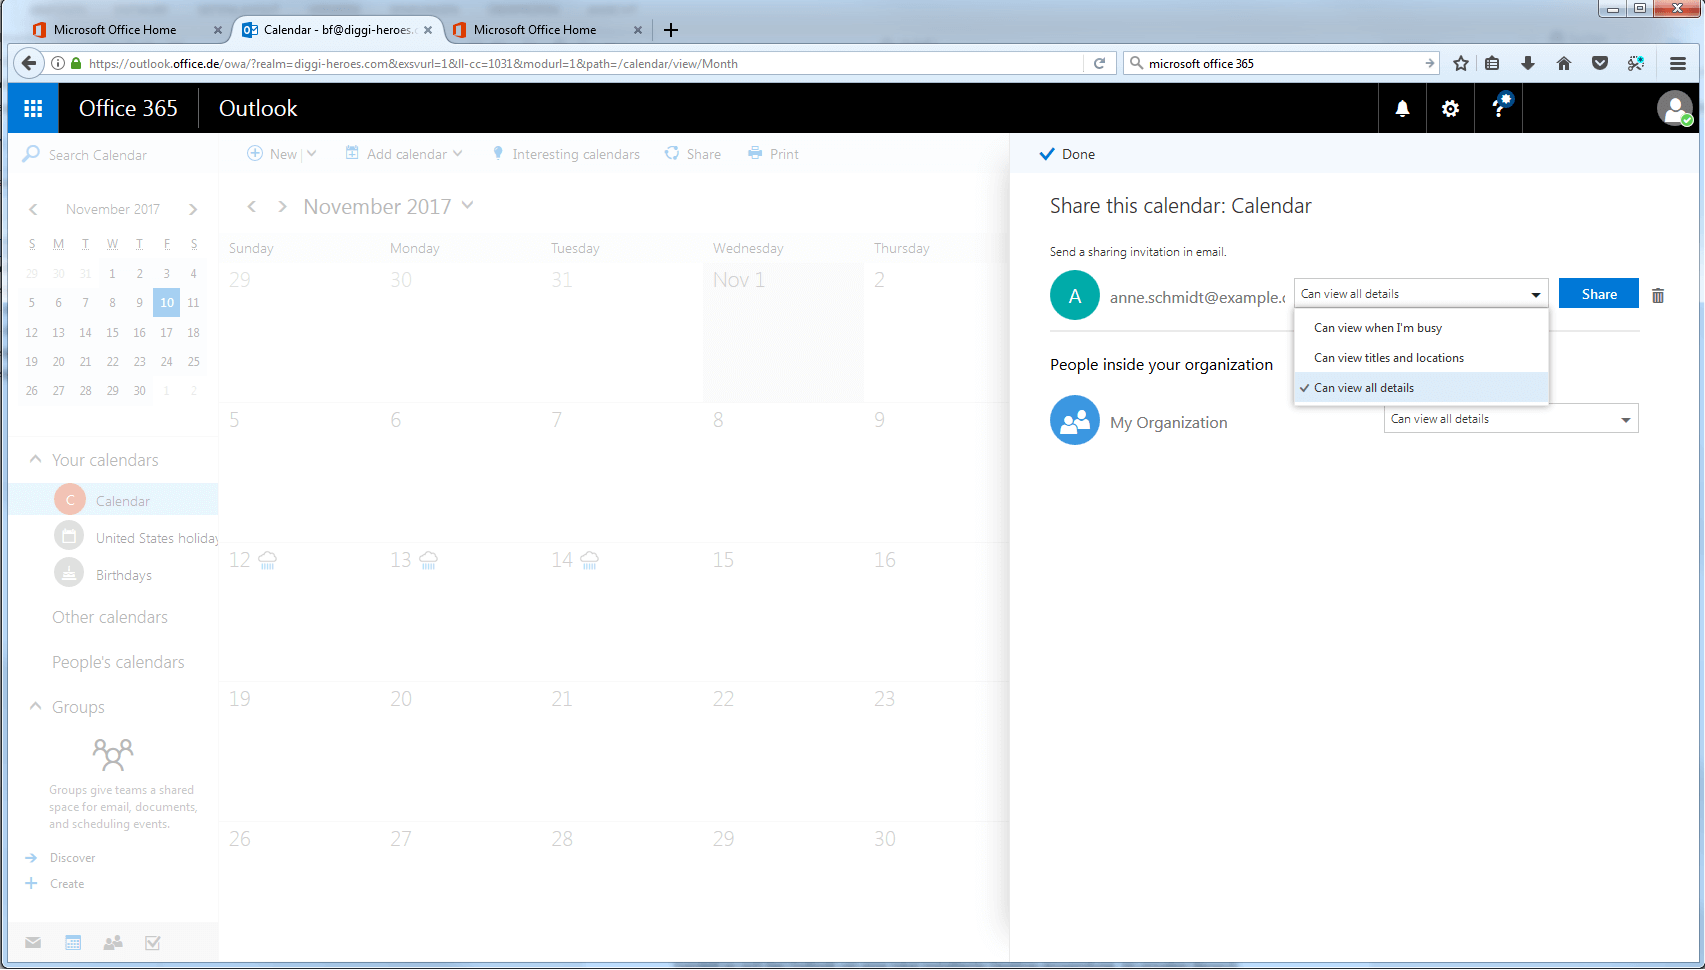 Aprende a compartir el calendario de Outlook - 1&1